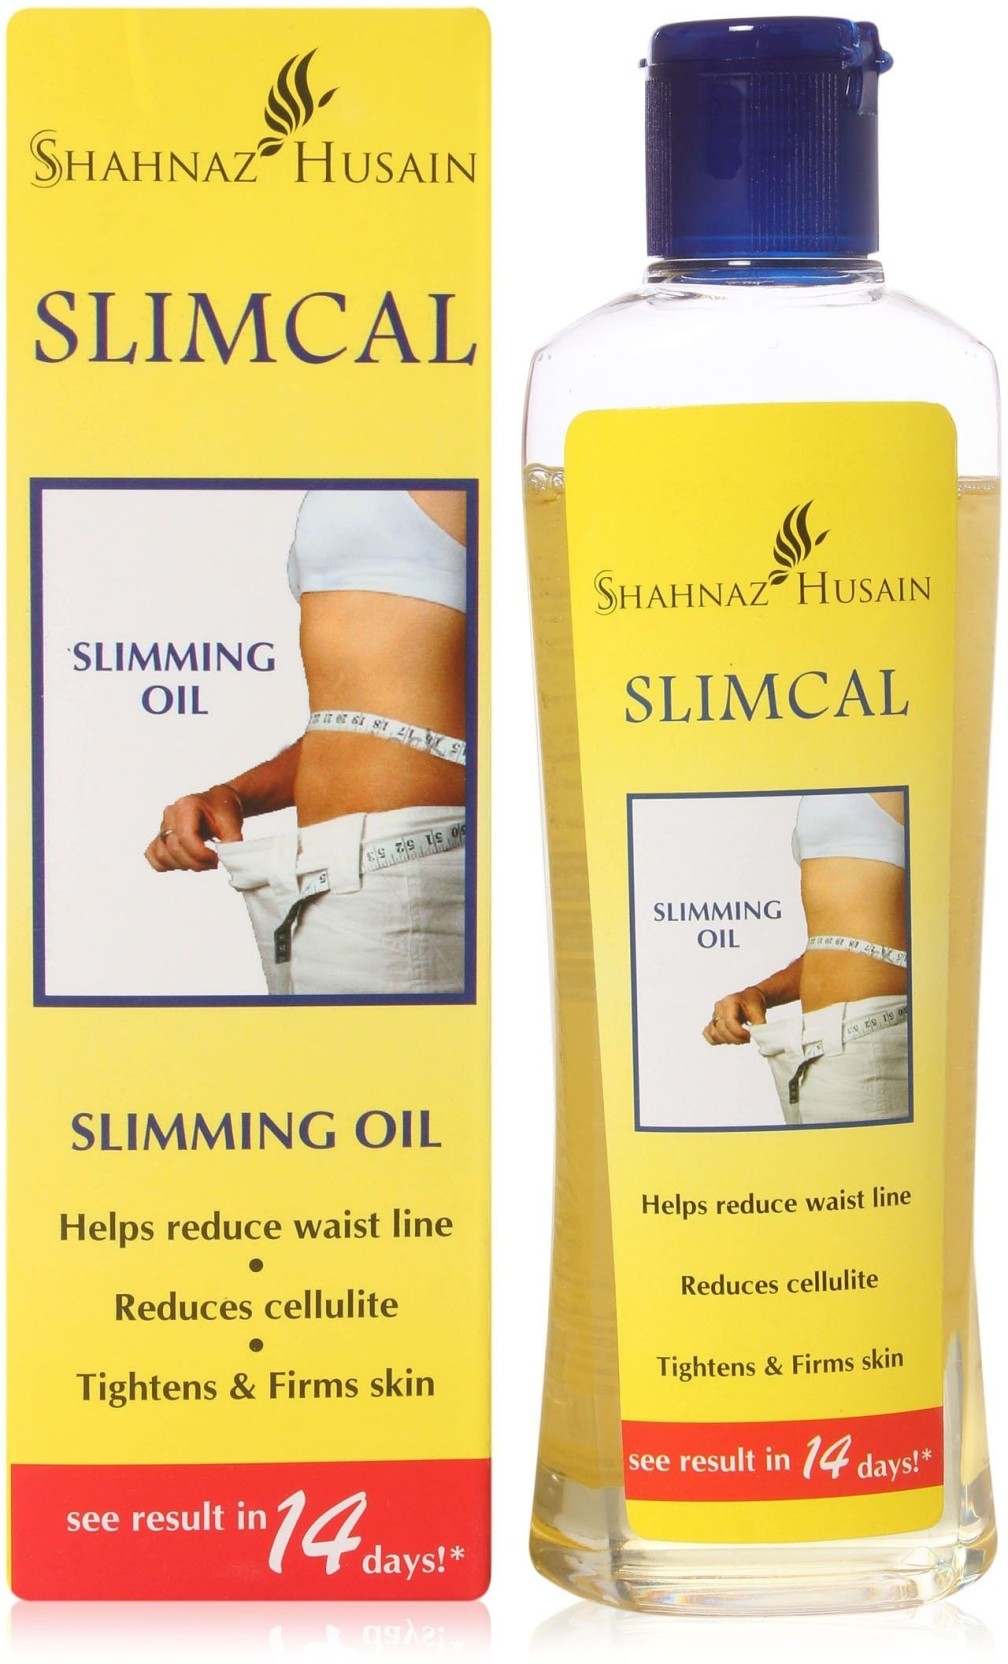 Shahnaz Husain Slimcal Slimming Oil Price in India - Buy ...